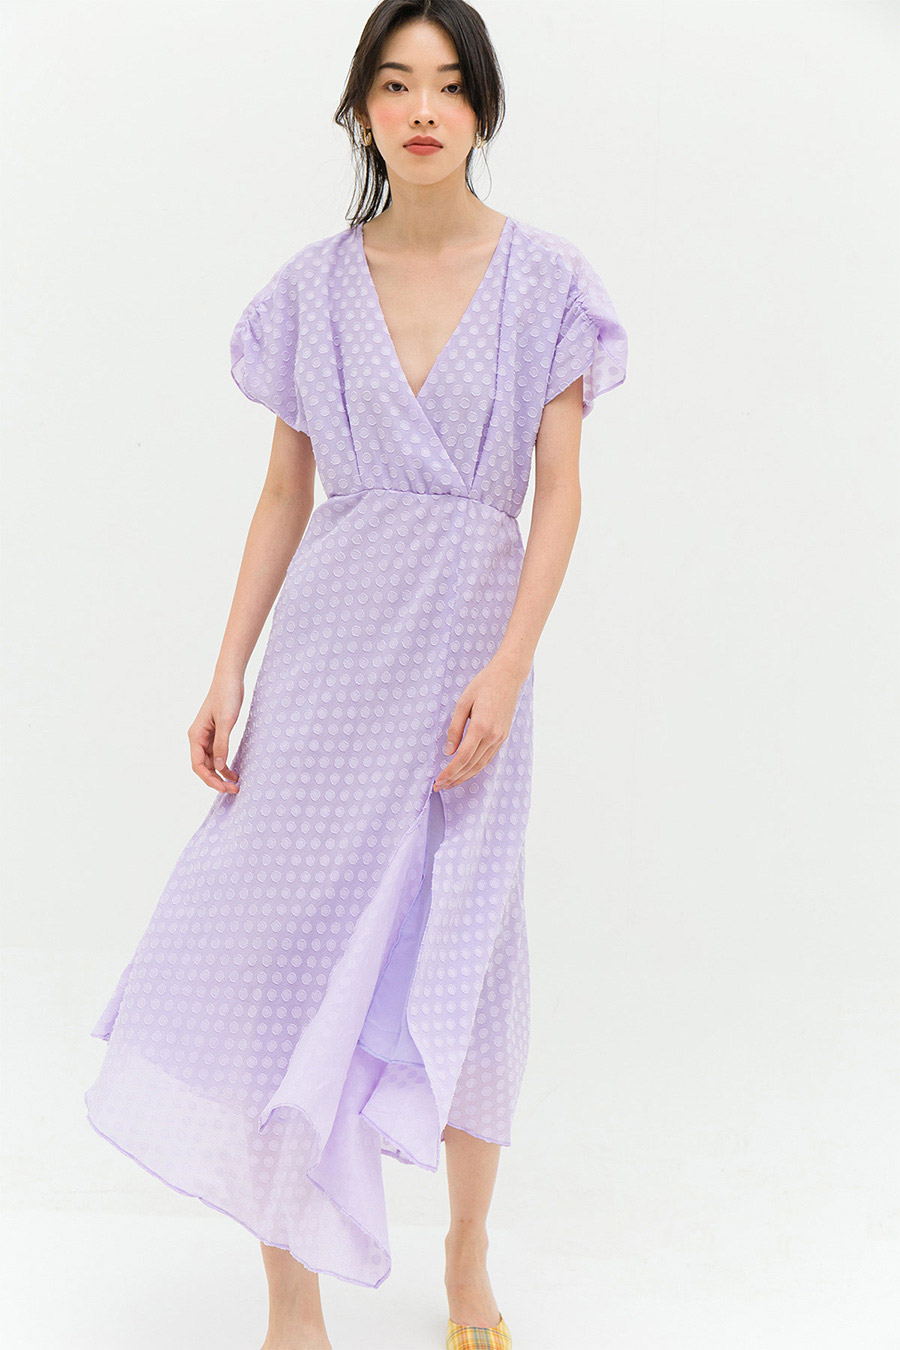 *BO* LAFAILLE DRESS - WISTERIA